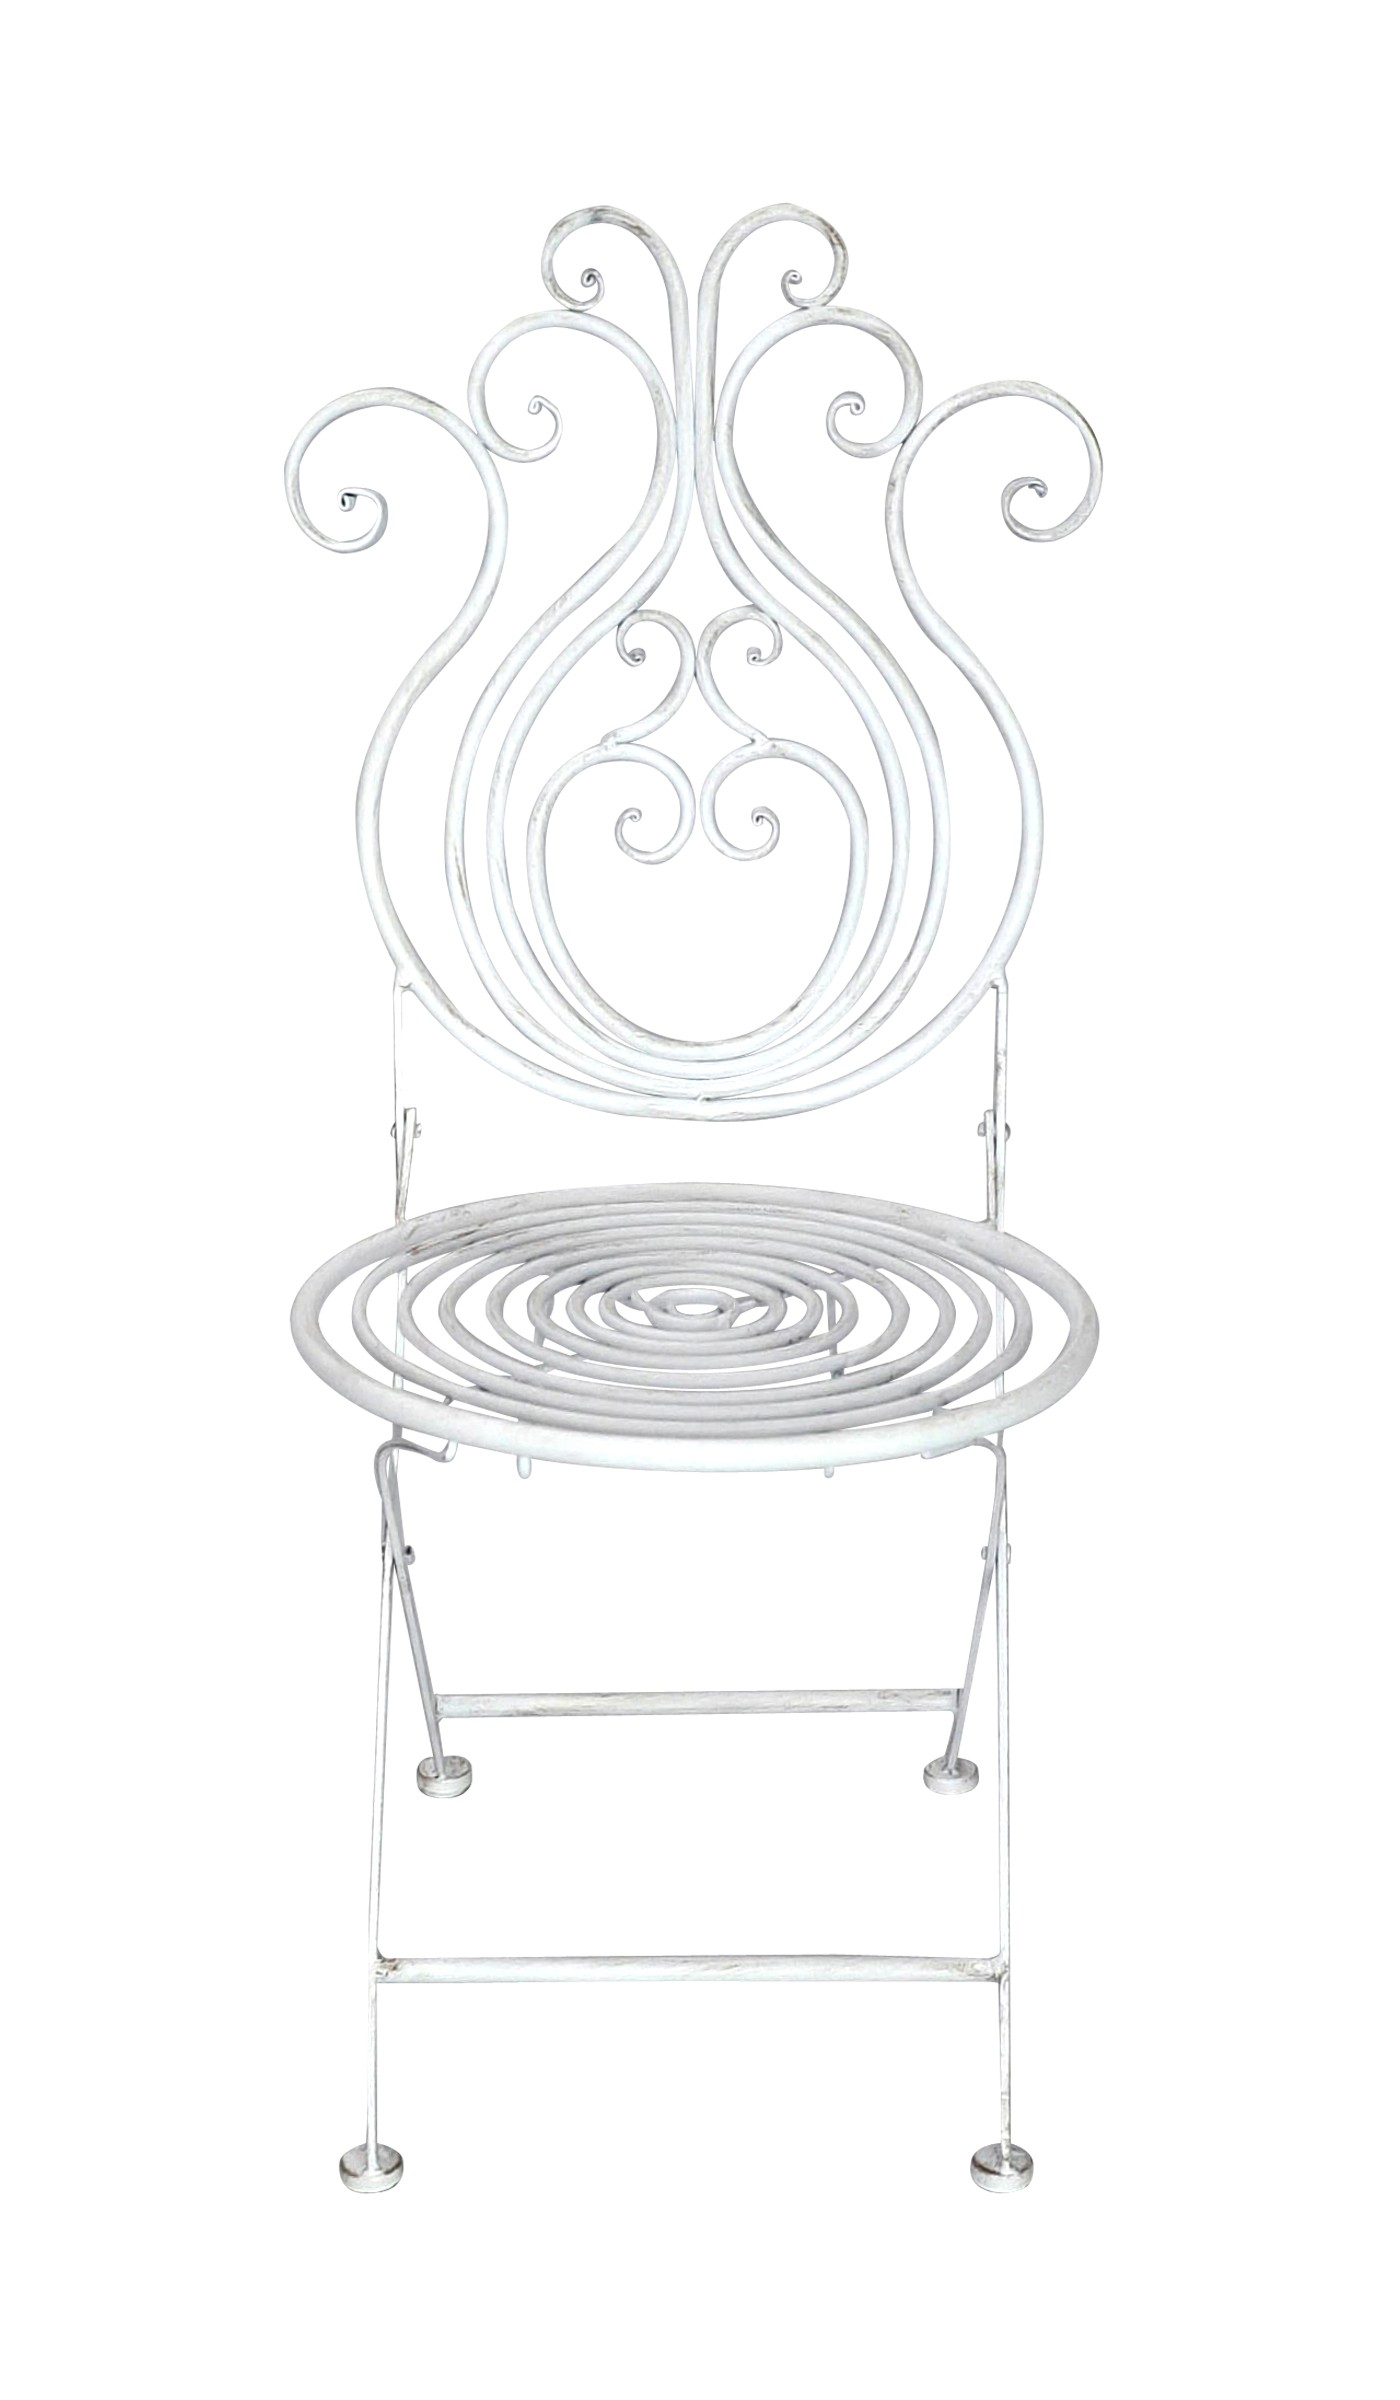 Chaise en fer forg collection paon demeure et jardin for Chaise jardin fer forge